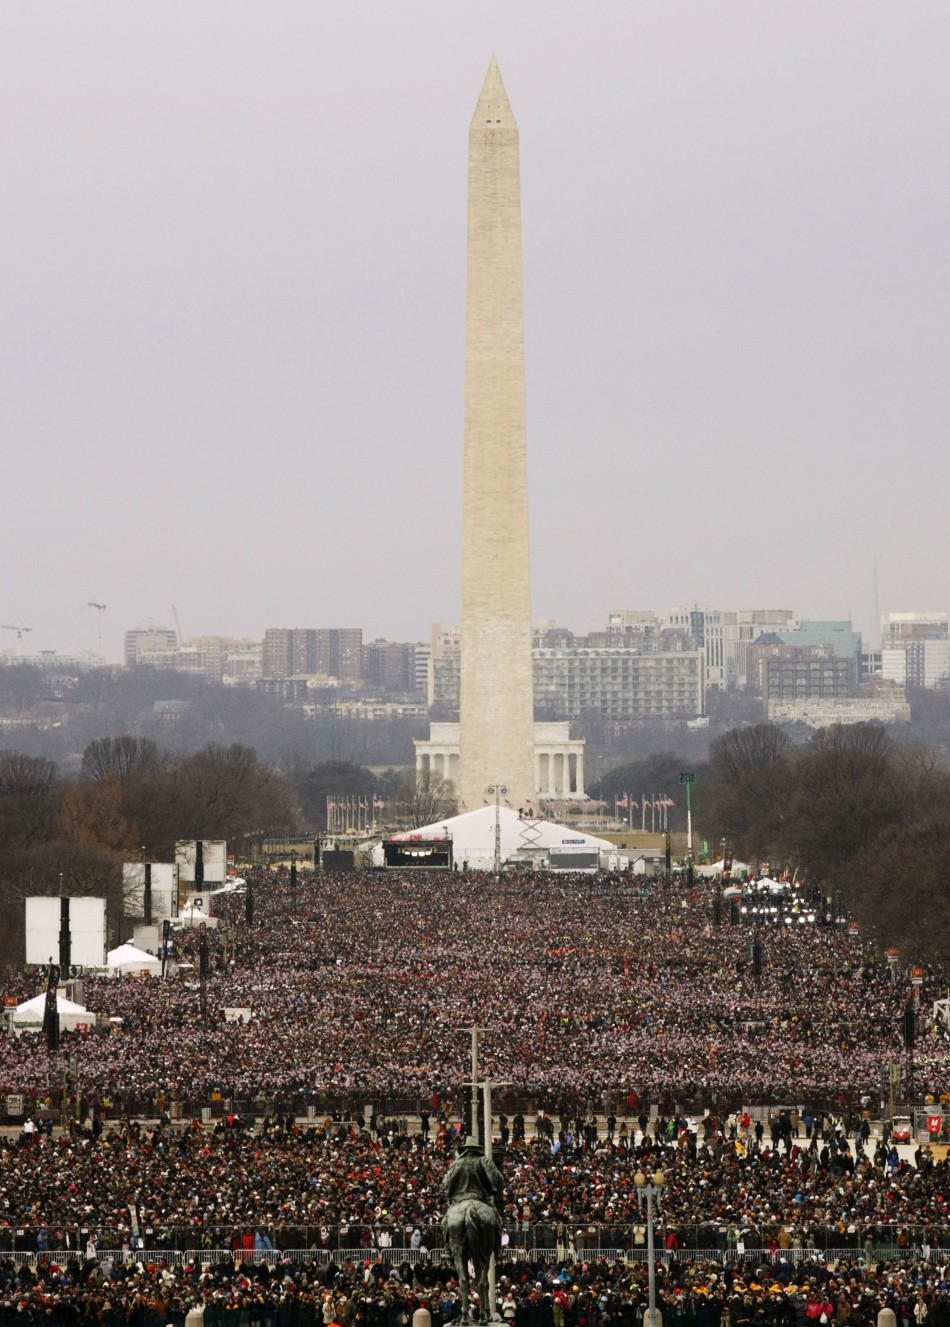 Obama's Second Inauguration